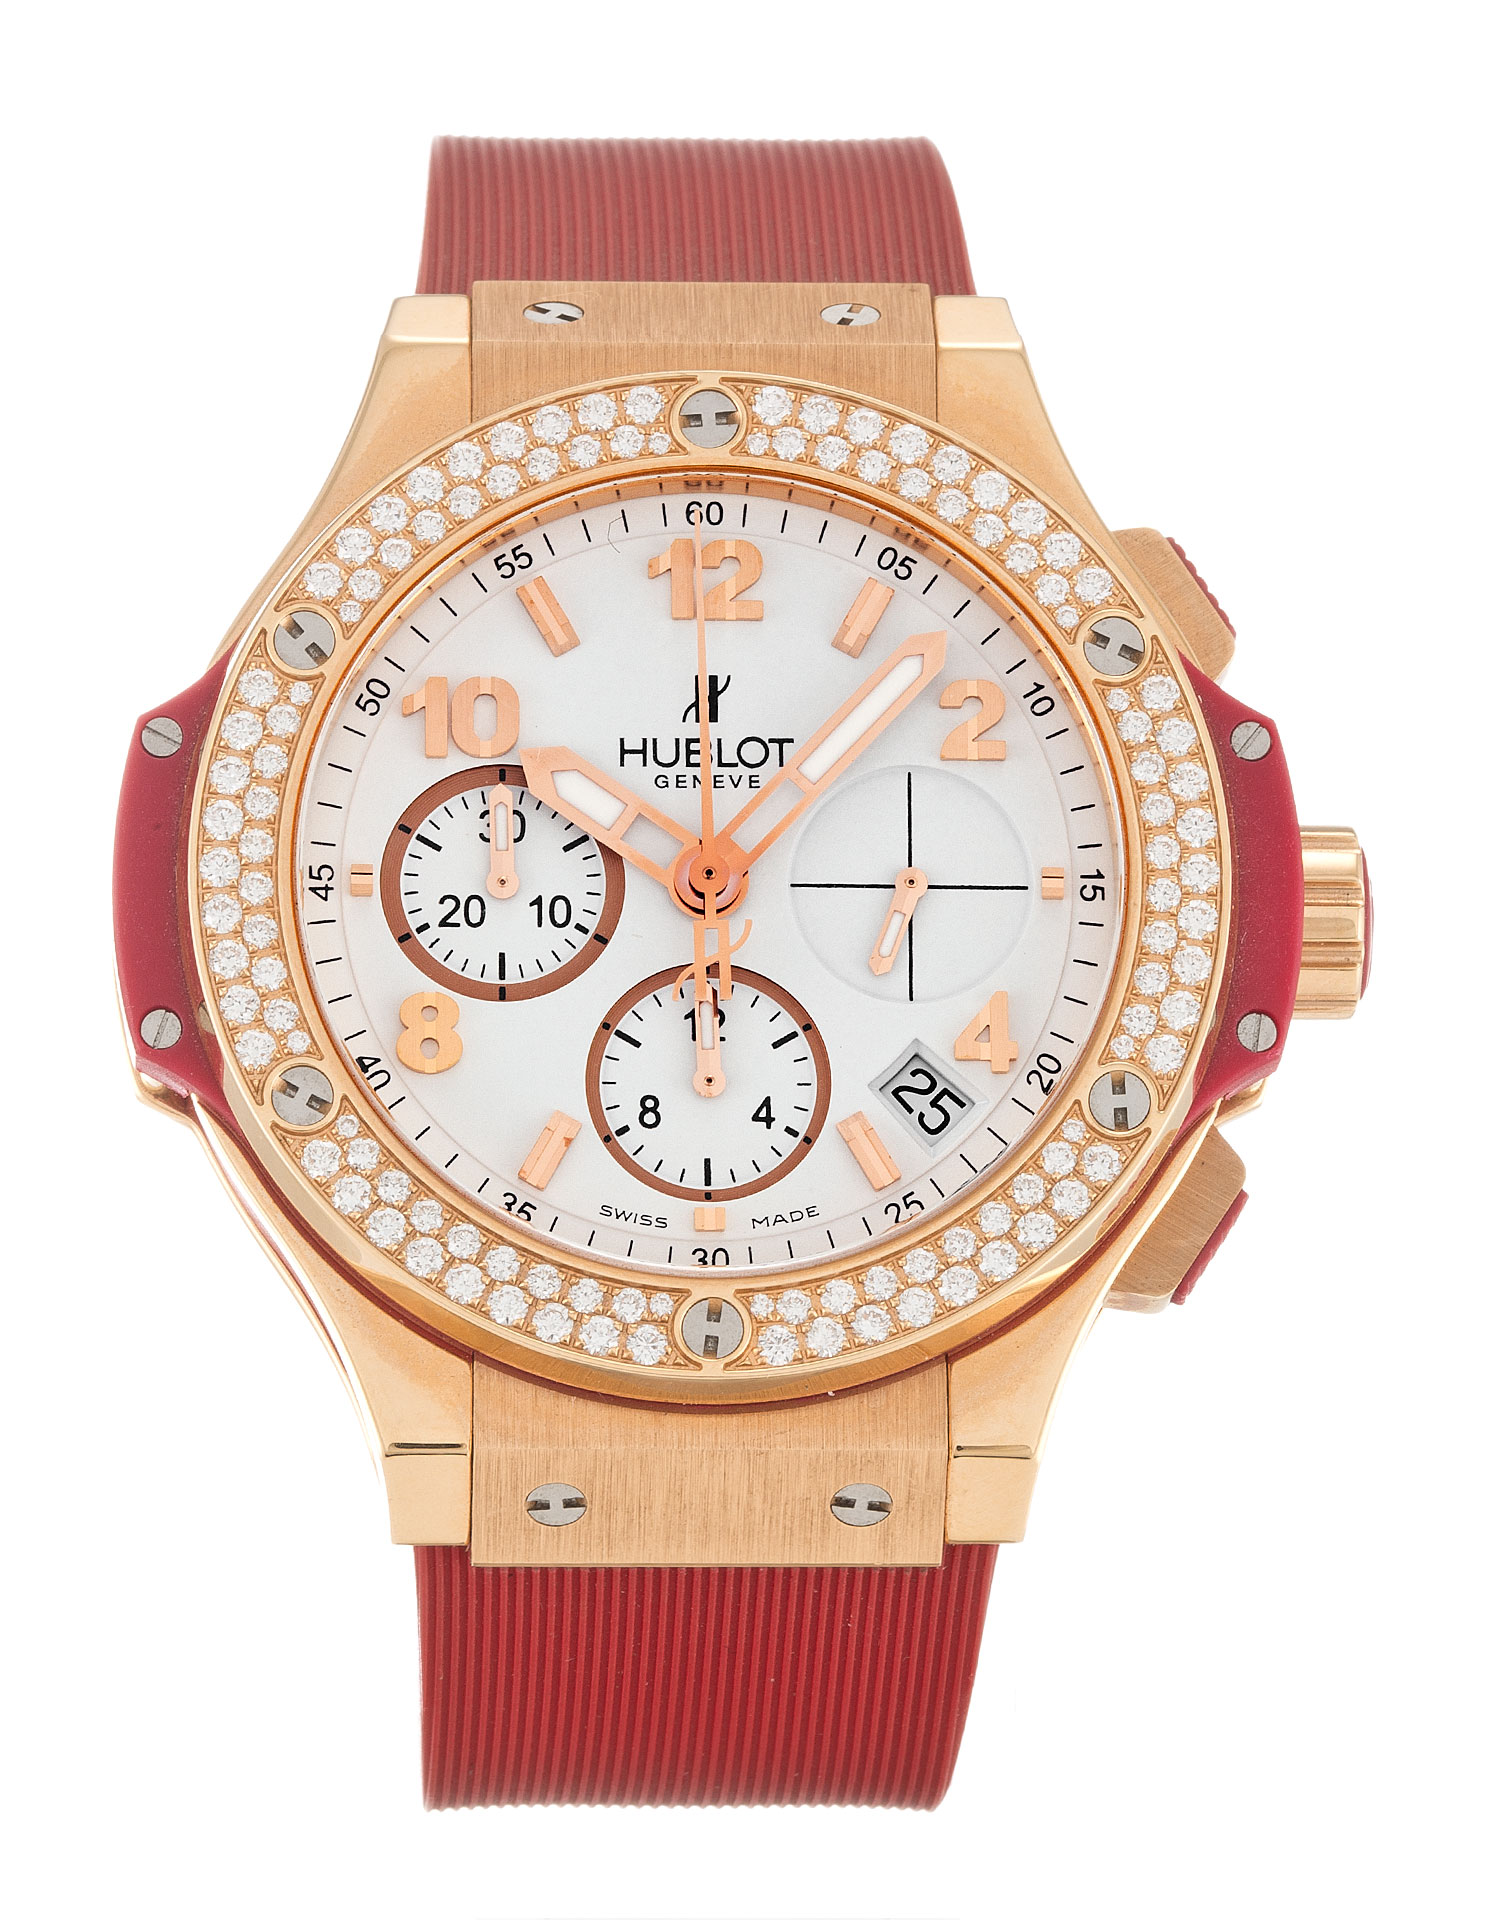 Hublot 41mm 341.Pr.2010.Rr Ladies 41 Mm Red Gold Case Automatic Movement – iapac.to